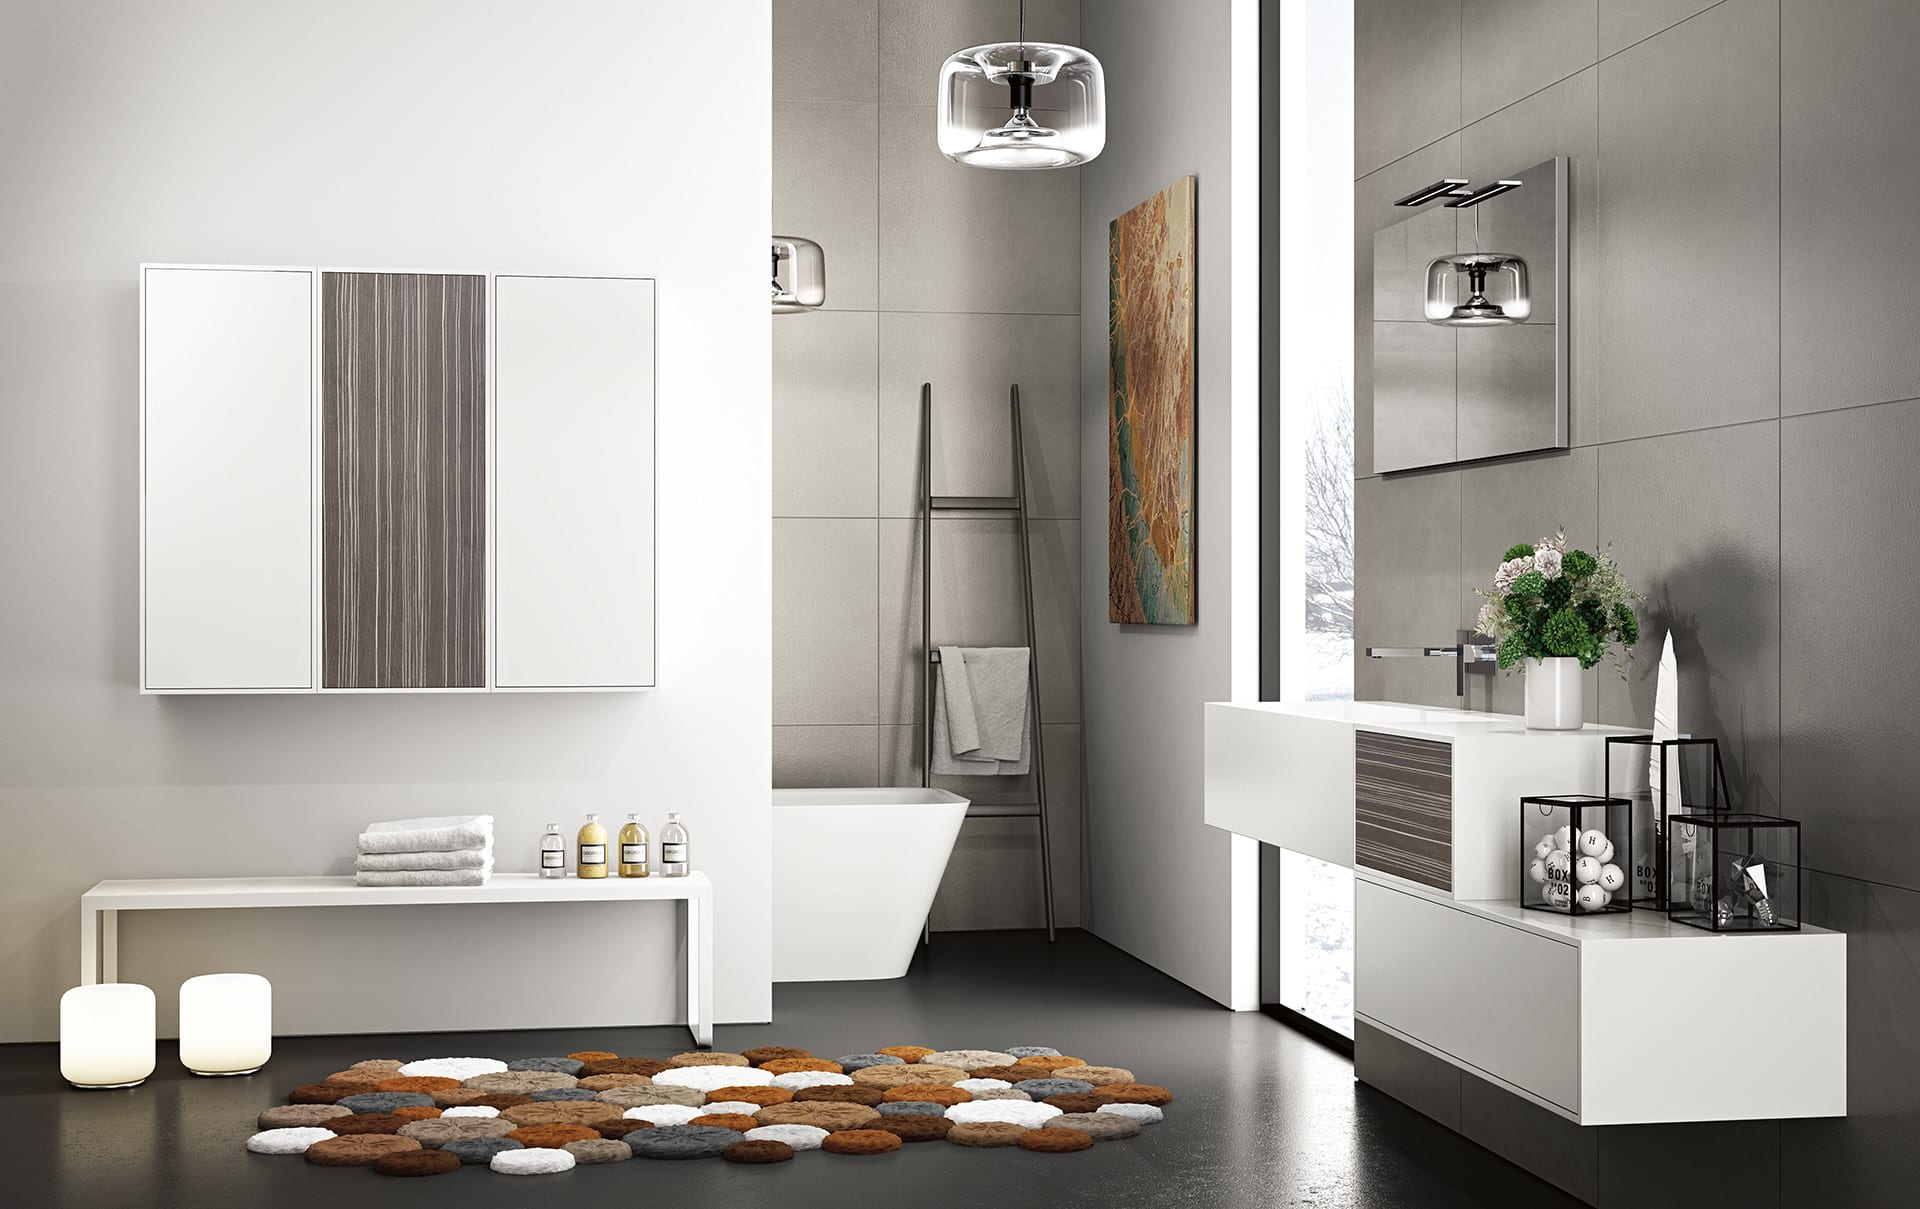 European kitchen center is a source of modern and contemporary bathroom furniture solutions.